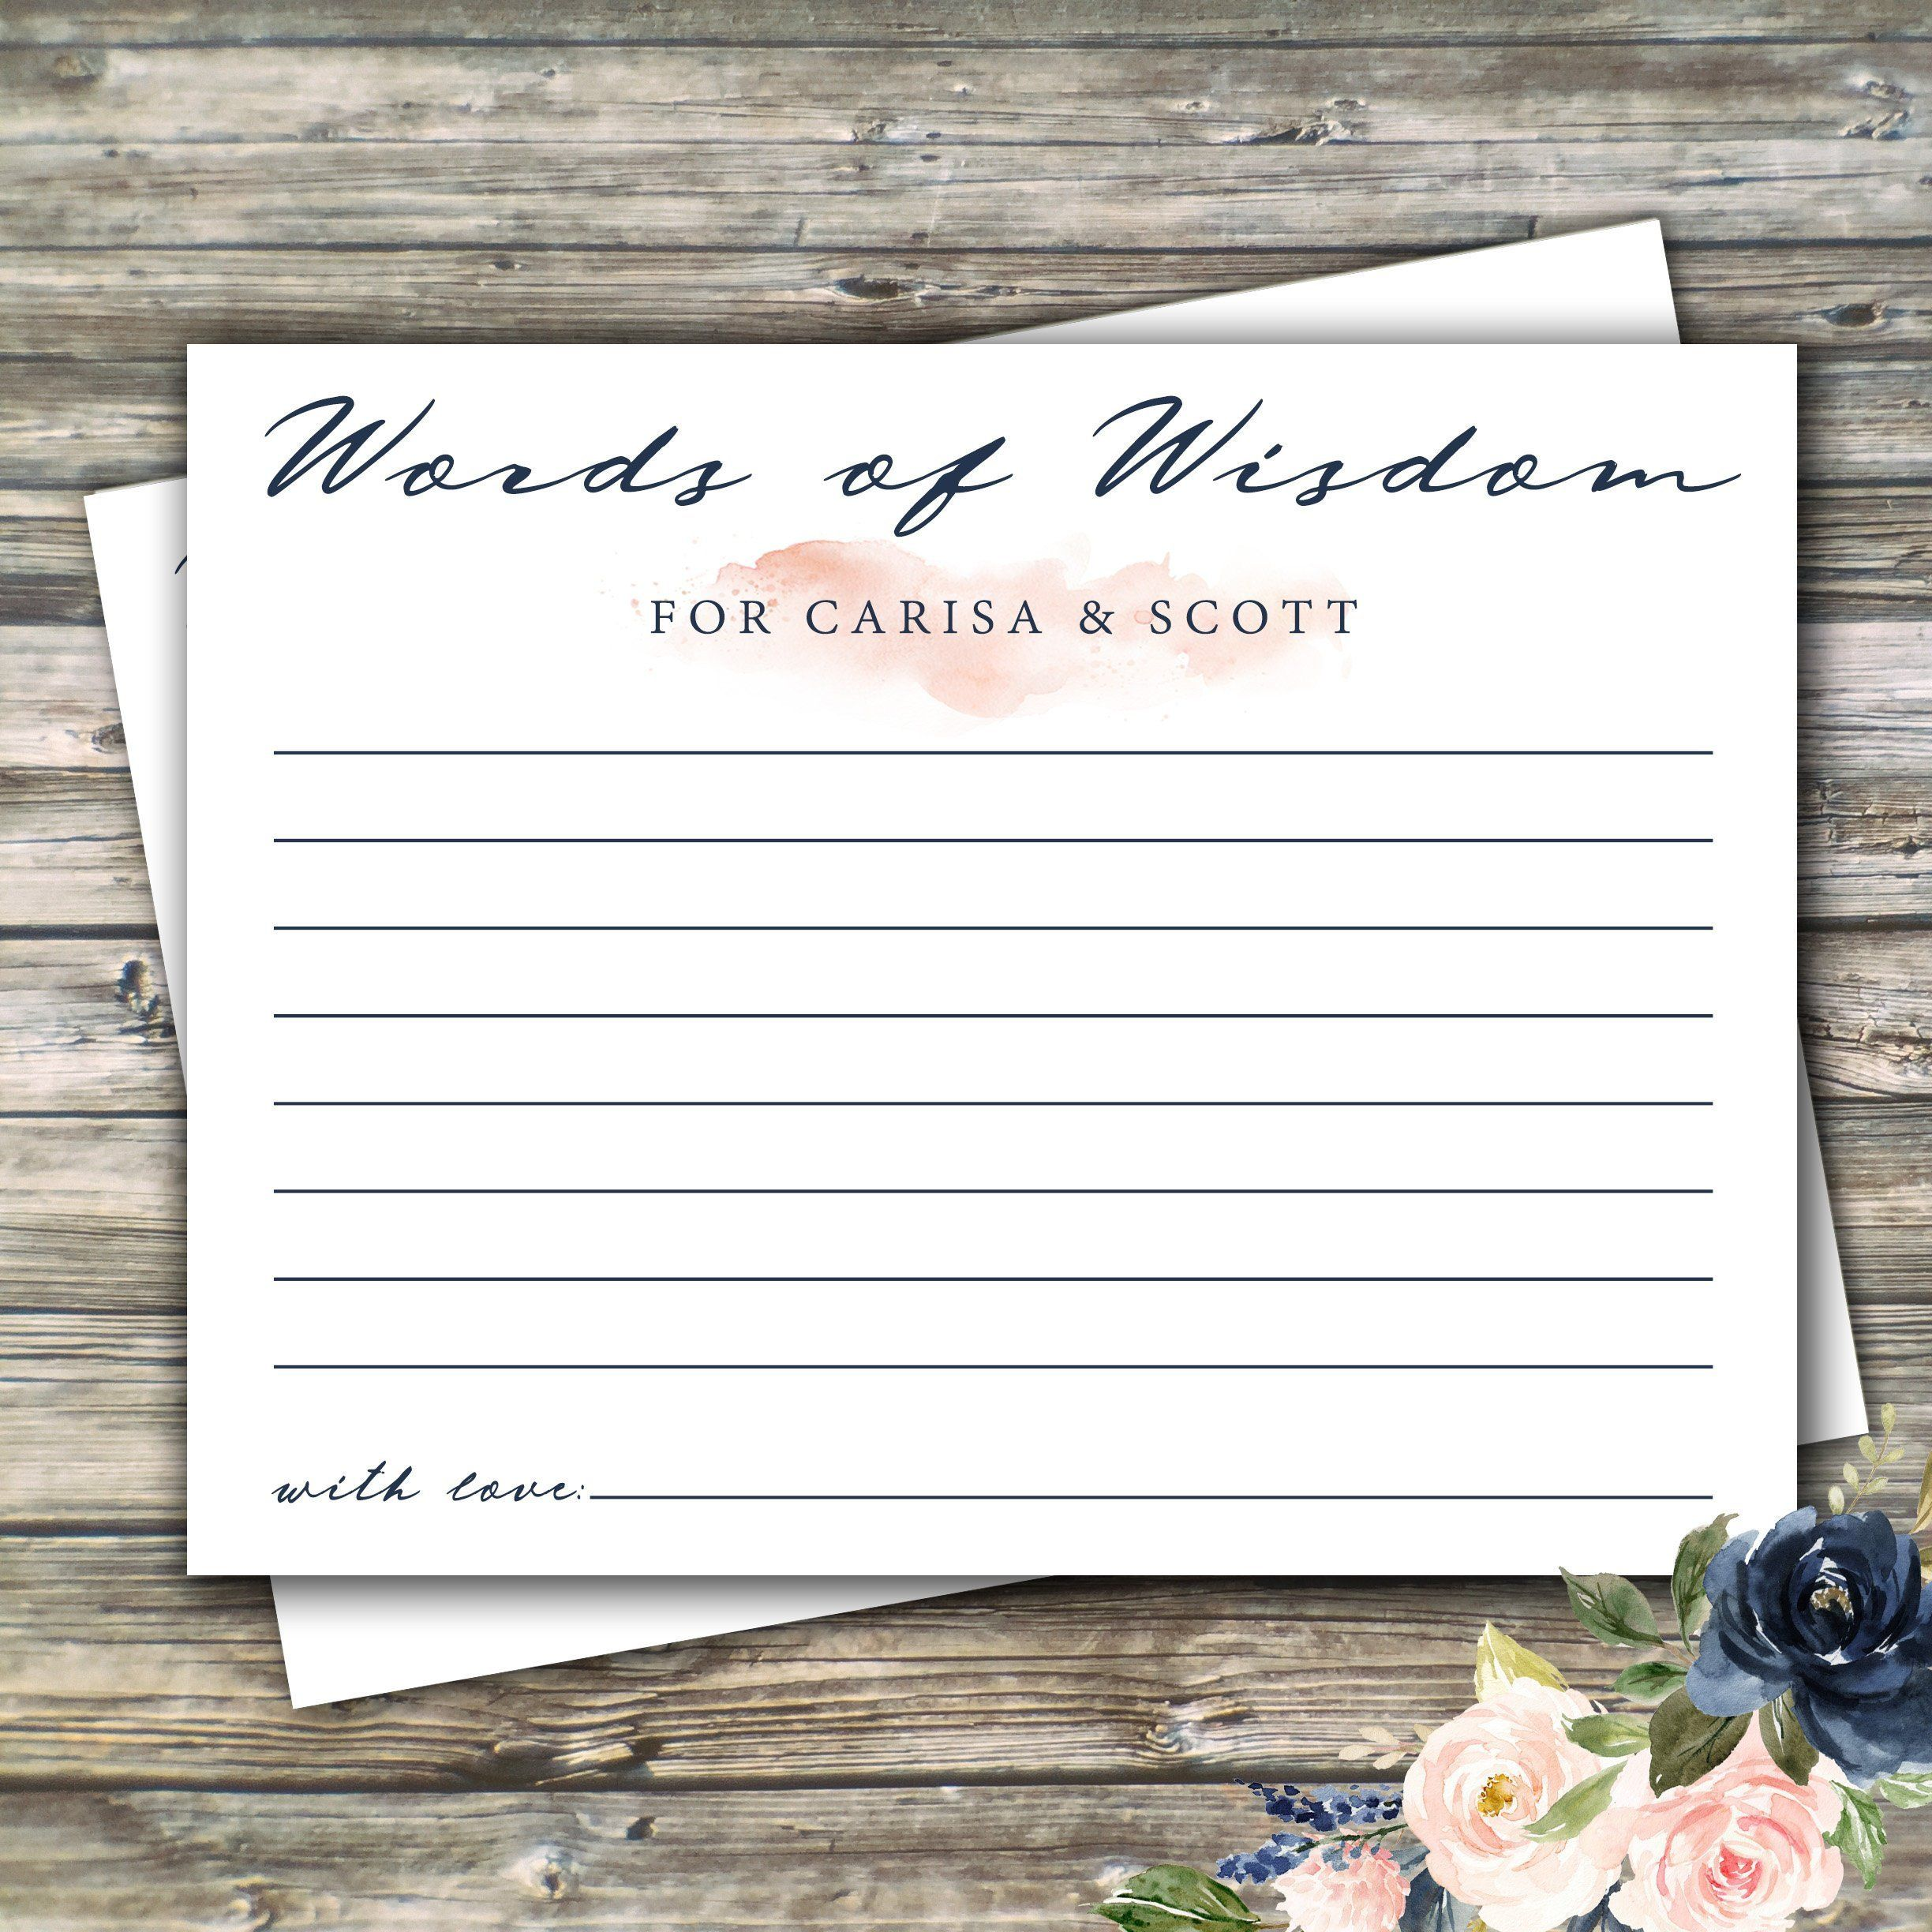 Of for words groom wisdom bride and 44 Wedding